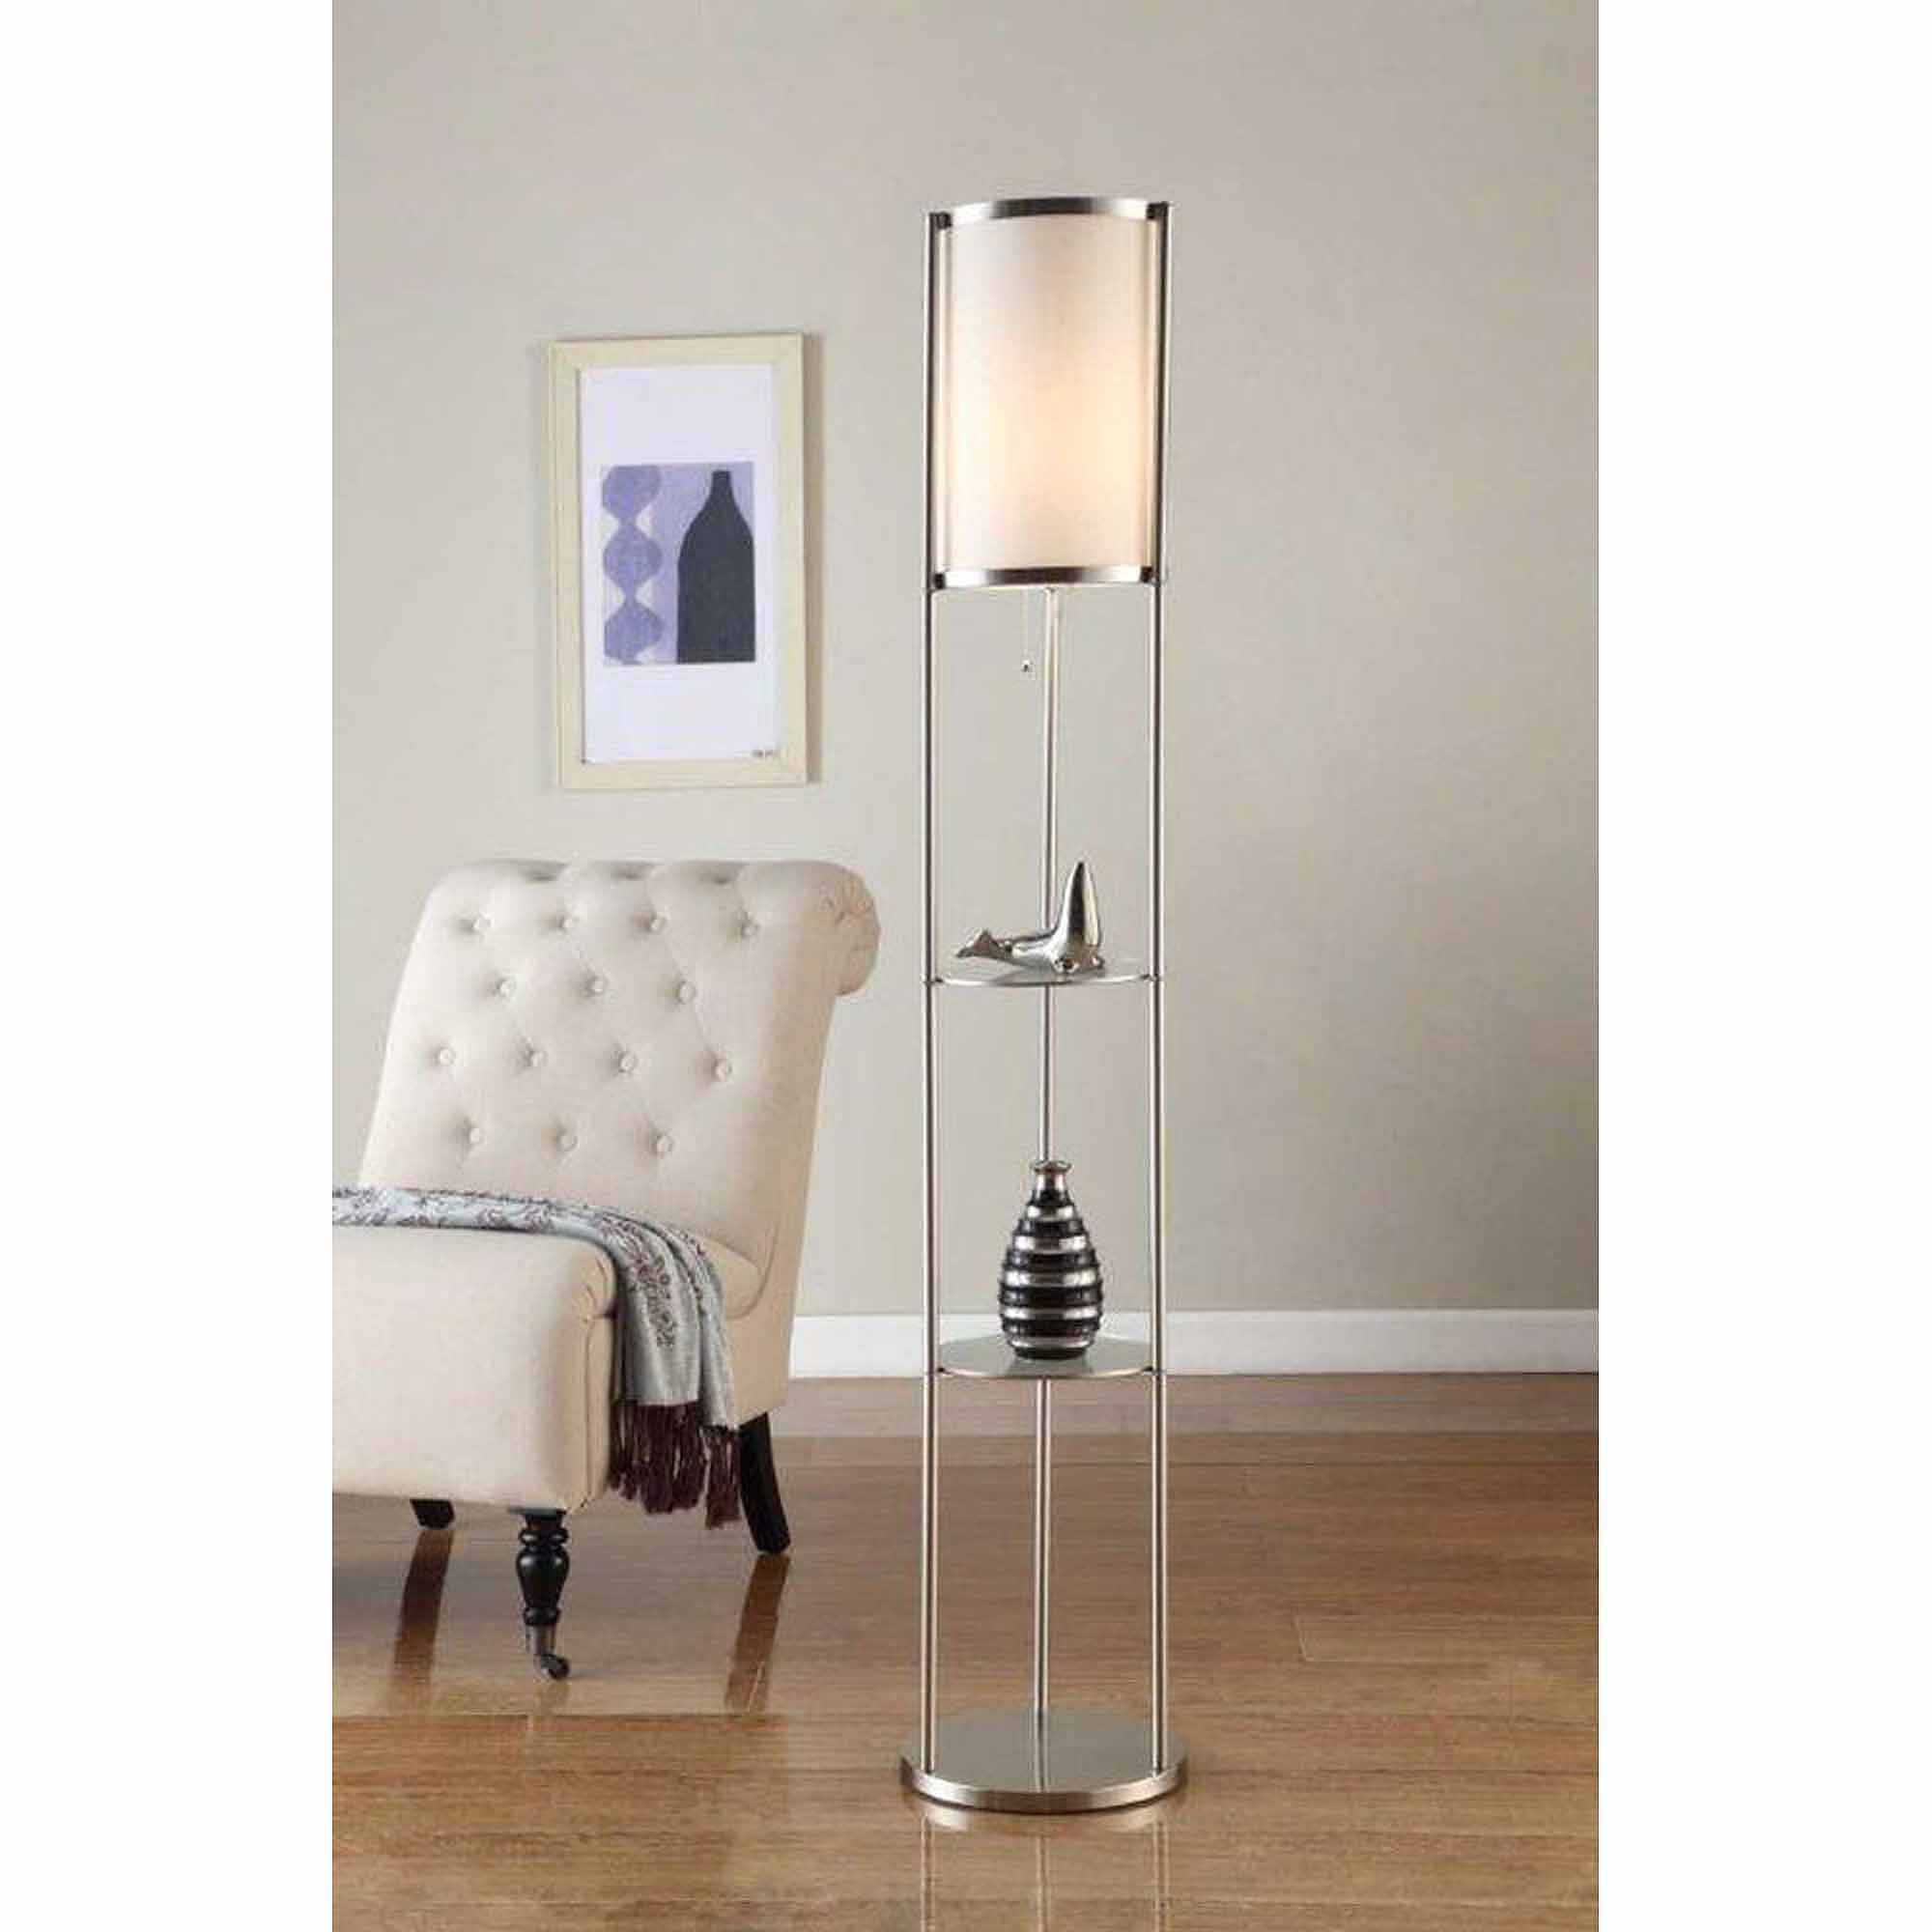 Mainstays glass end table floor lamp matte black cfl bulb included walmart com